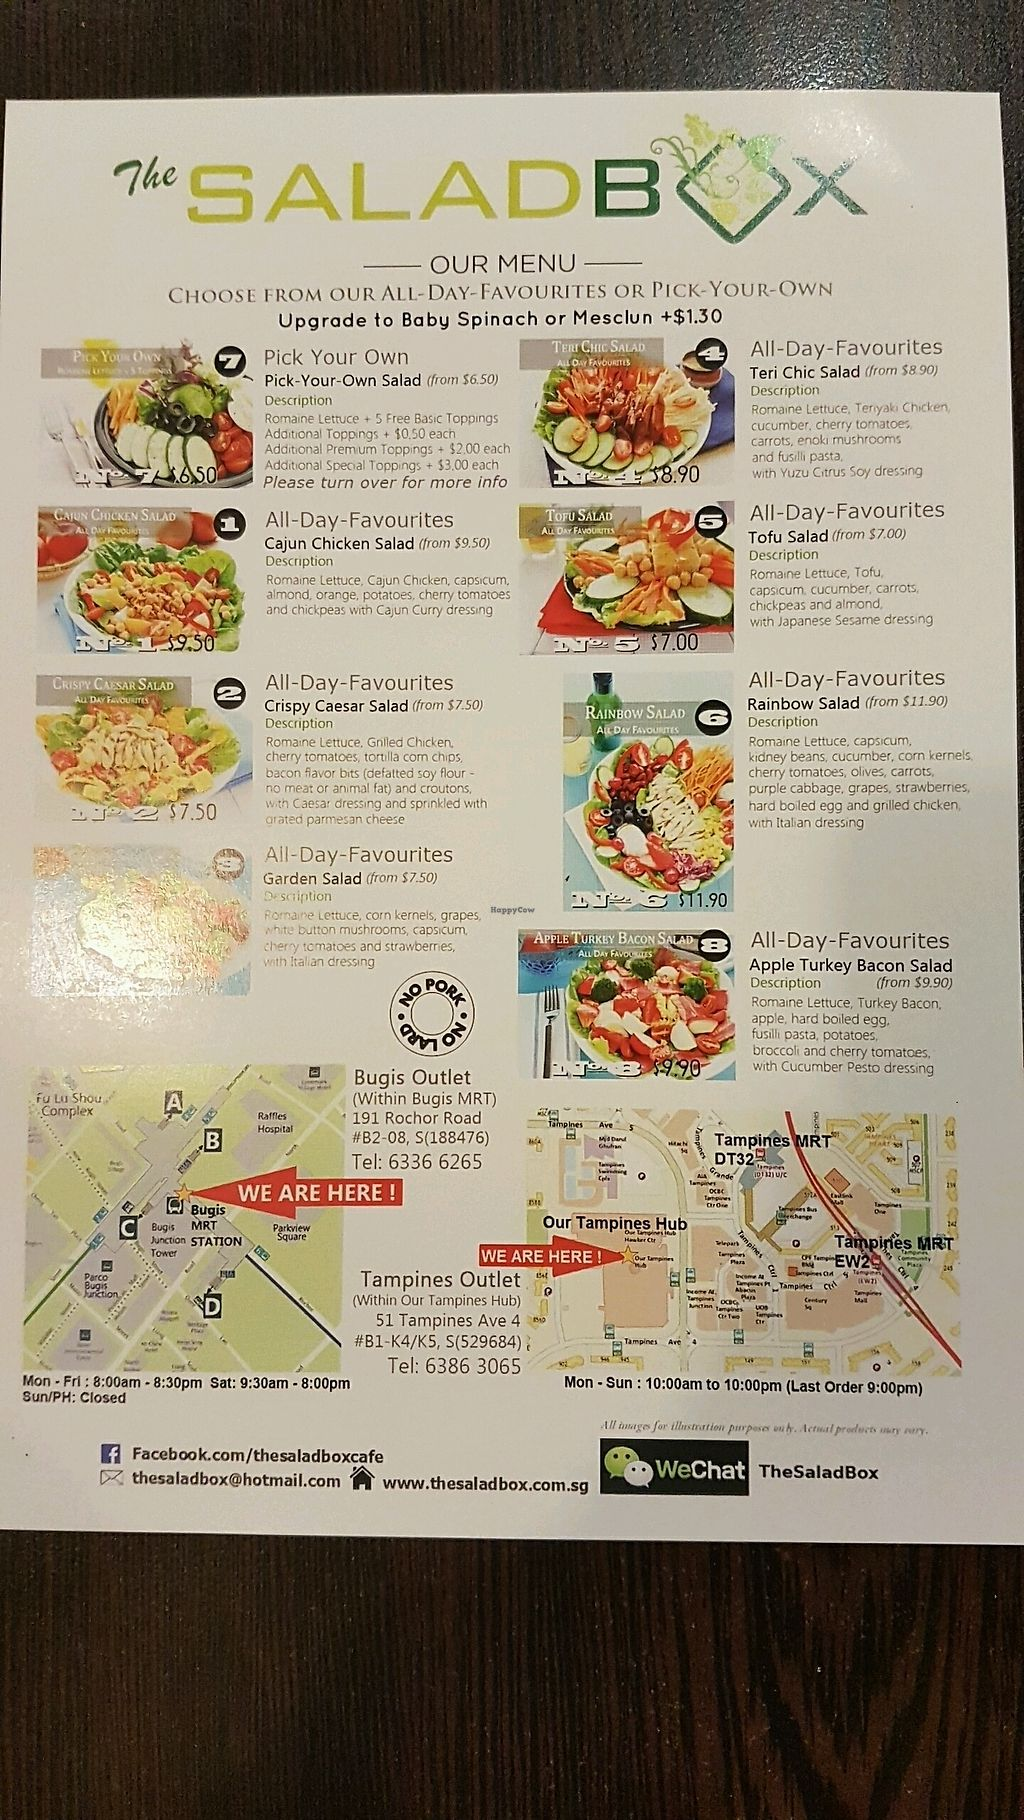 "Photo of The SaladBox - Bugis MRT   by <a href=""/members/profile/matostars"">matostars</a> <br/>Menu page 2 <br/> March 17, 2018  - <a href='/contact/abuse/image/110210/371797'>Report</a>"